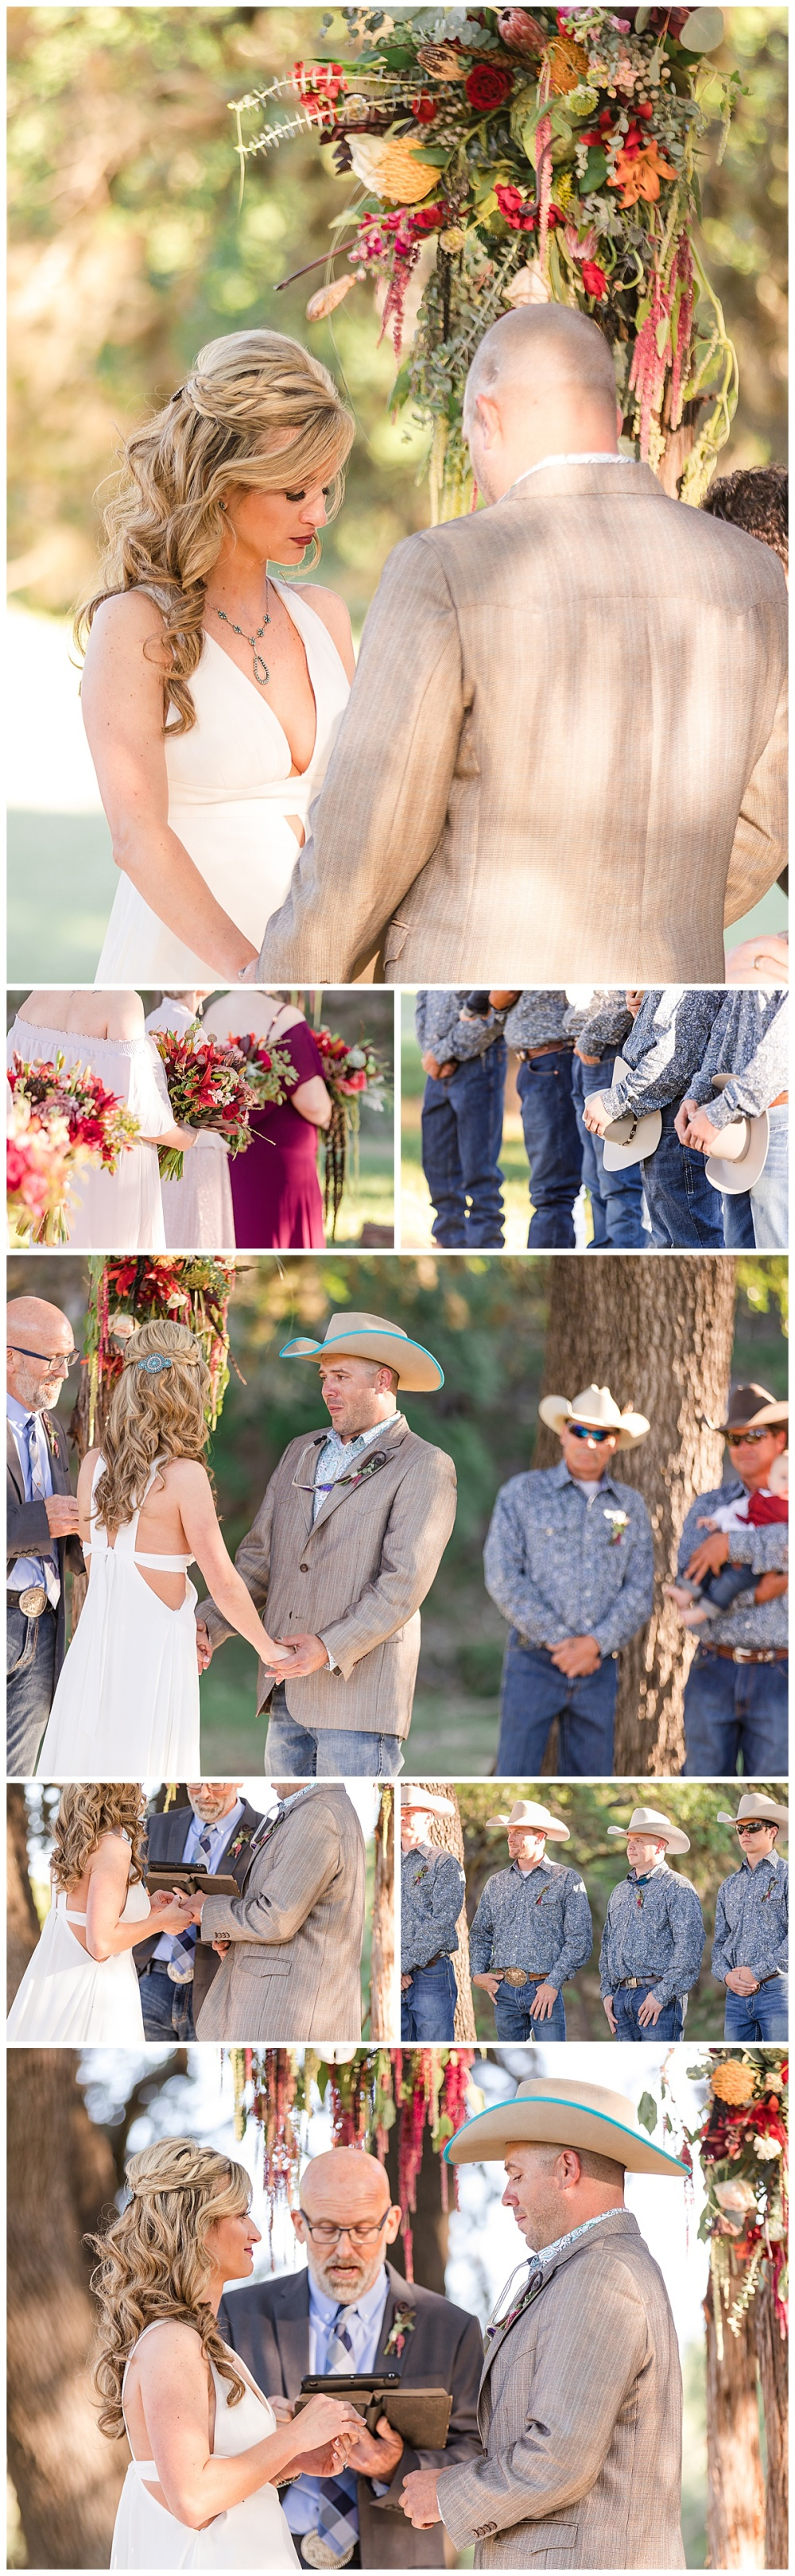 Eagle-Dancer-Ranch-Boerne-Texas-Wedding-Party-Barn-Carly-Barton-Photography_0030.jpg